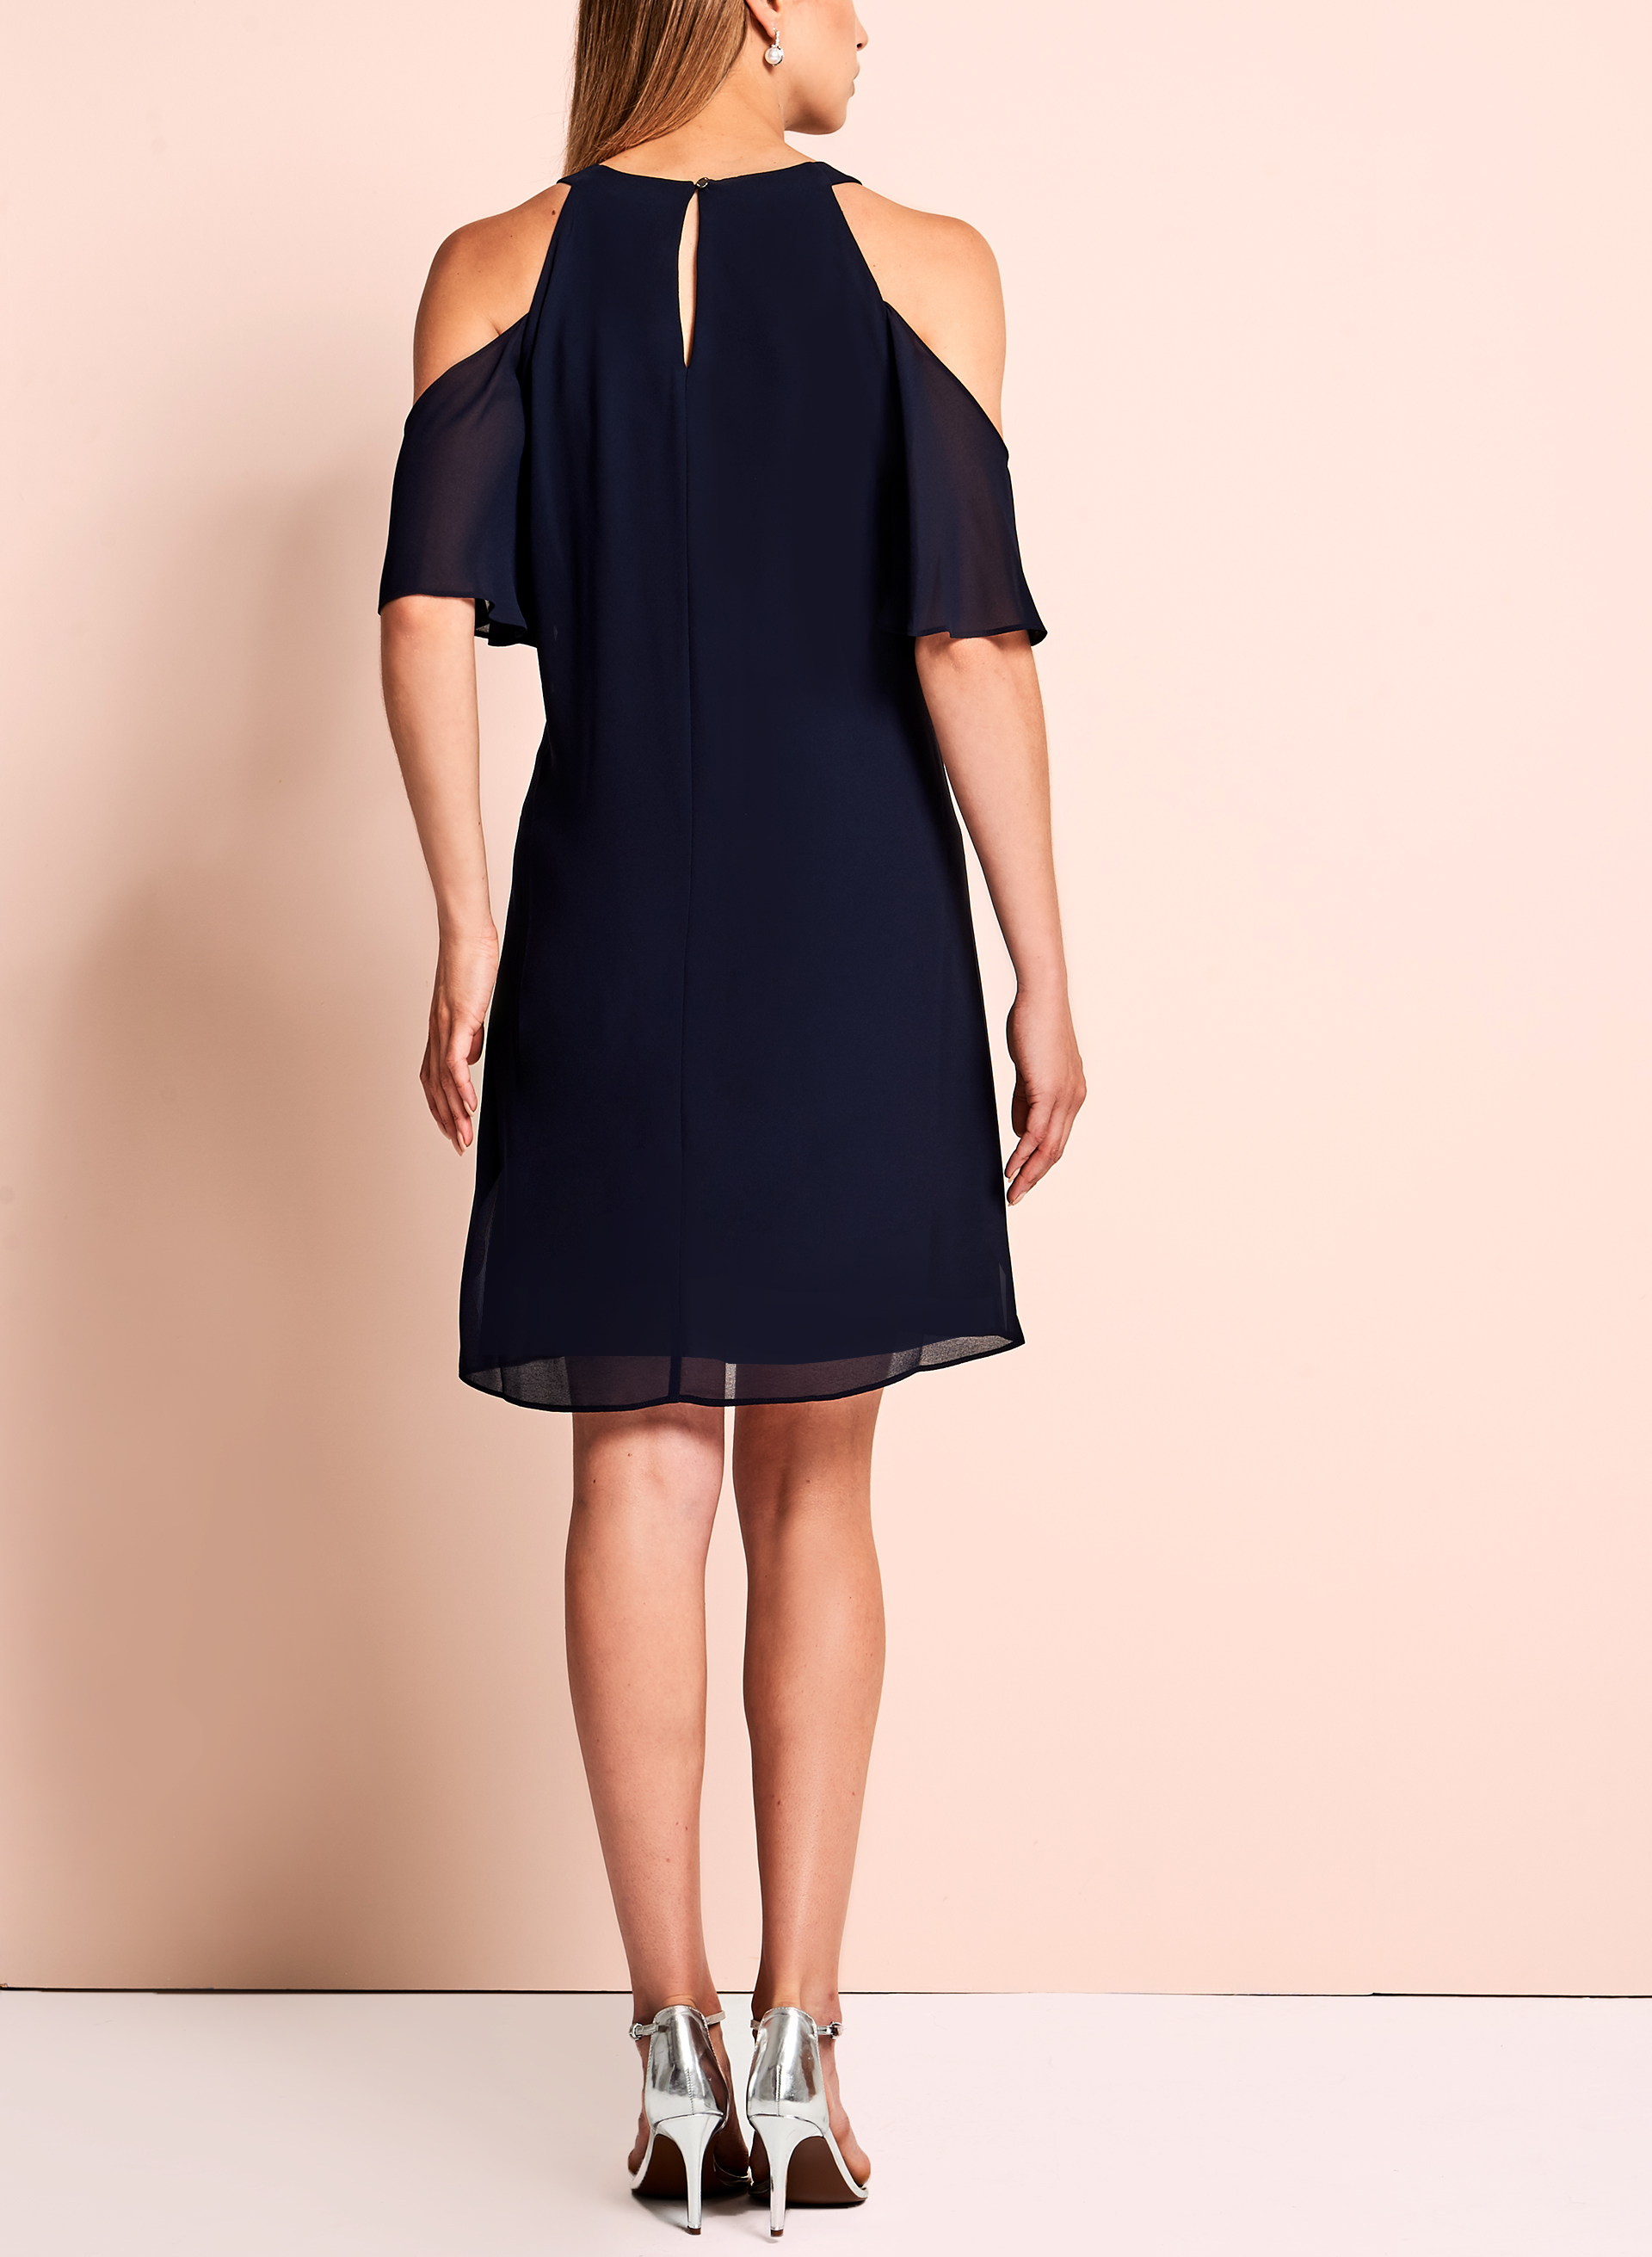 Vince Camuto - Cold Shoulder Dress, Blue, hi-res